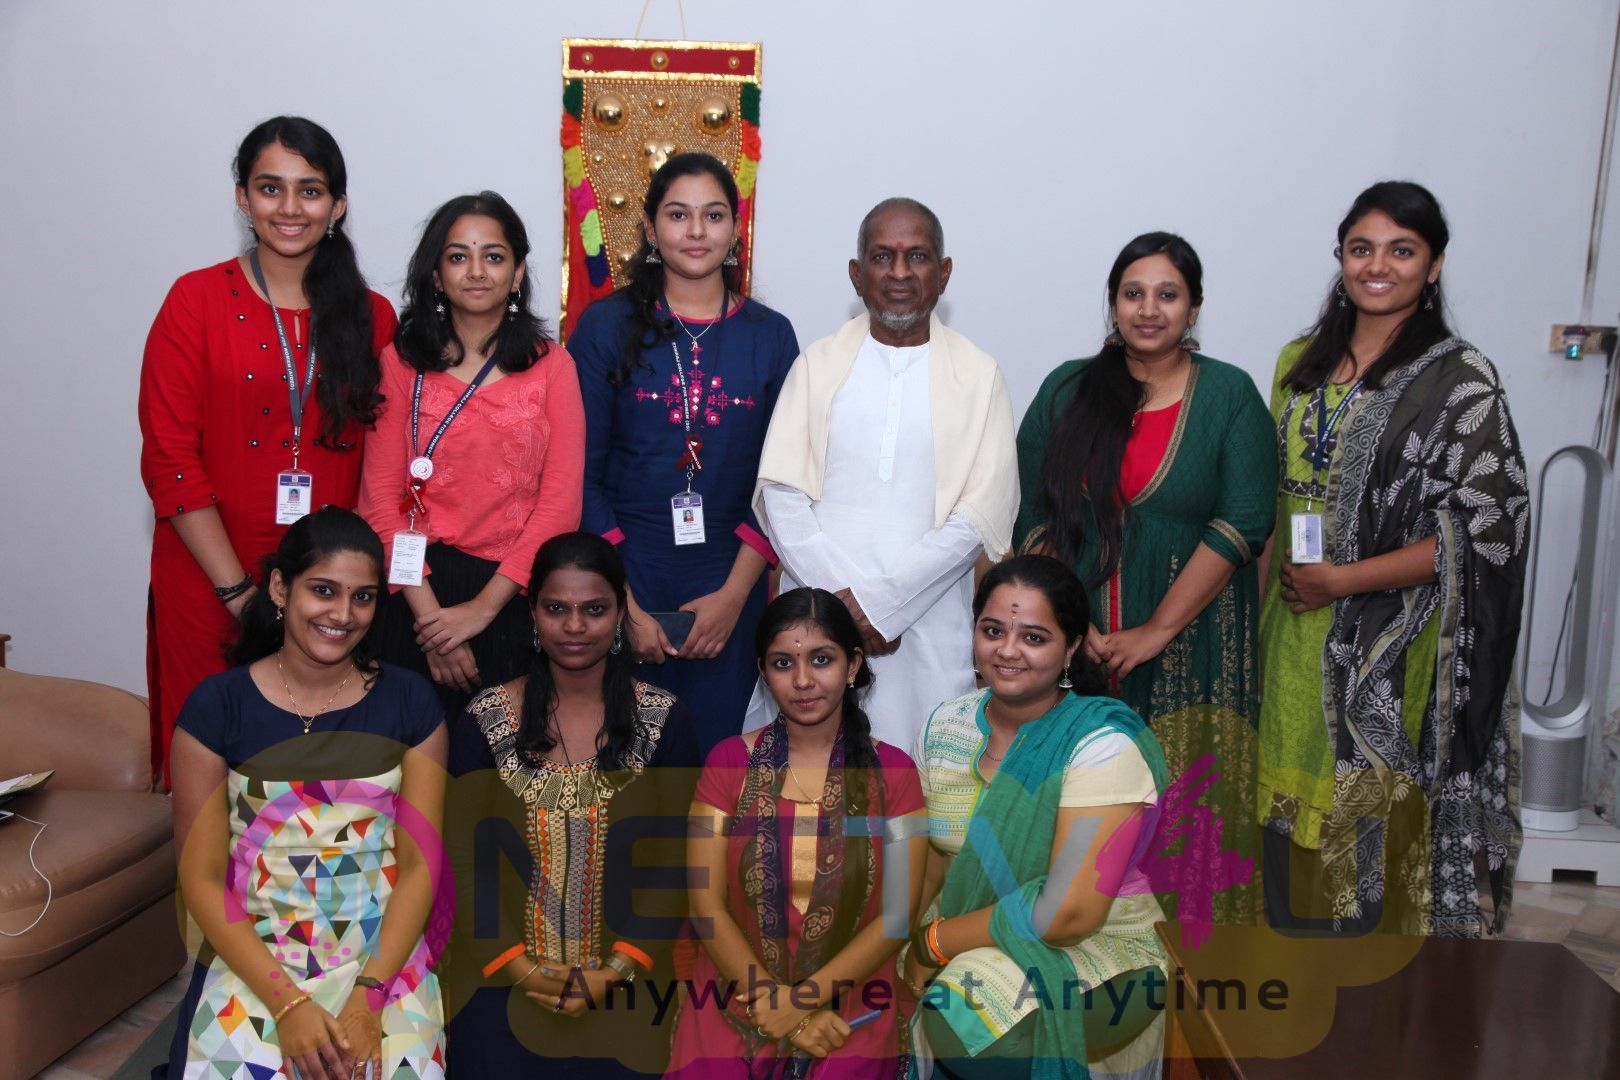 Ilayaraja Selected 9 Of The Students Be Singing Soon For The Composer In His Films Pics